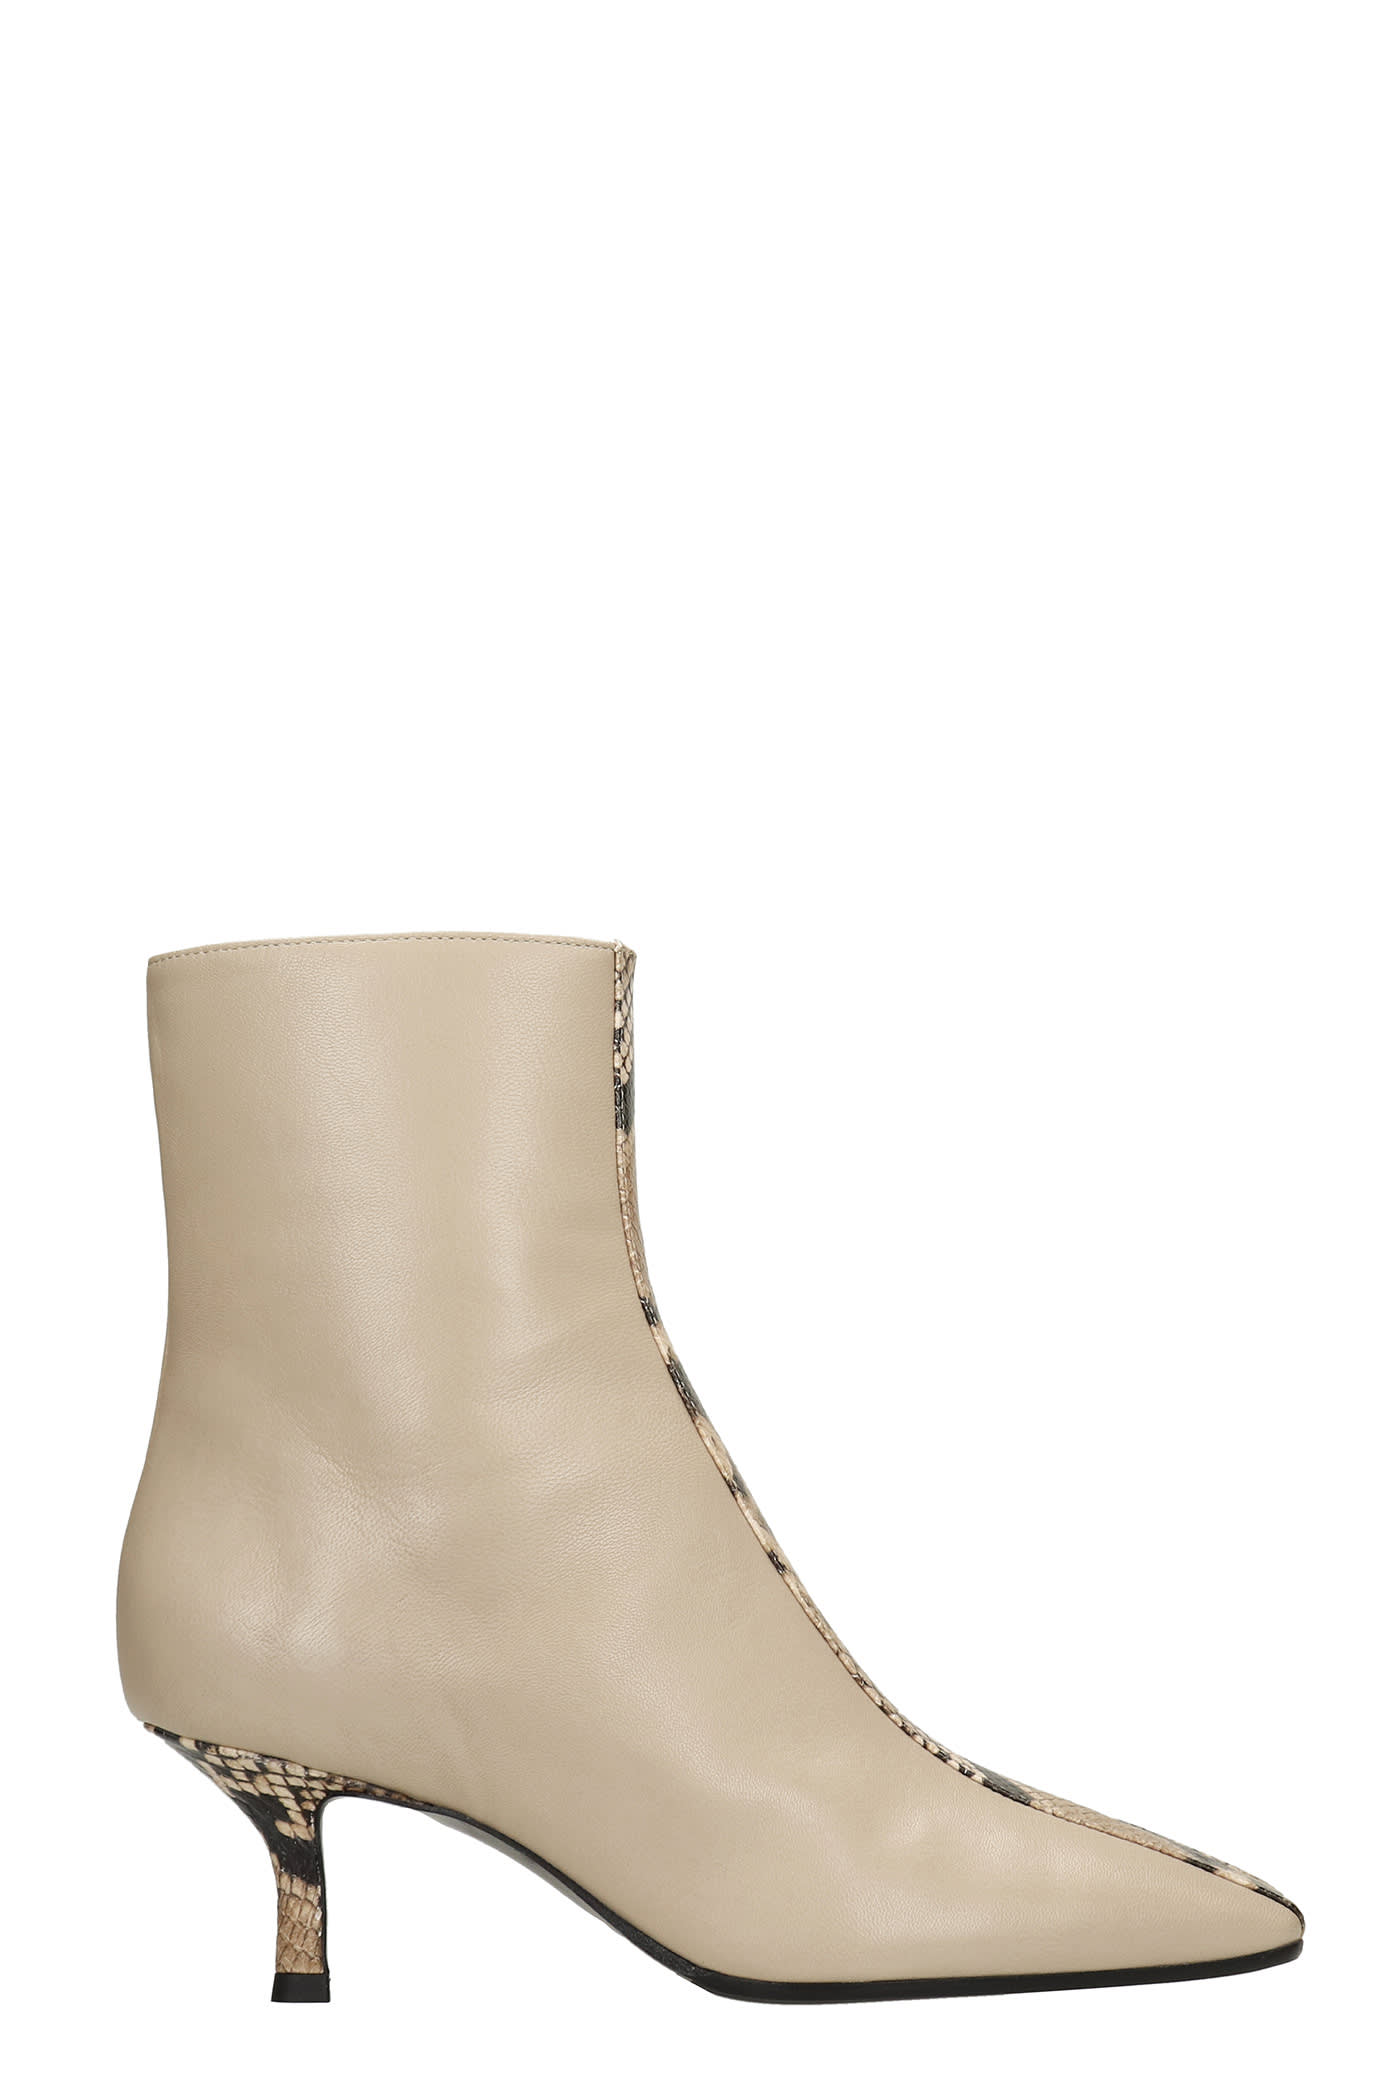 High Heels Ankle Boots In Beige Leather And Printed Pyton